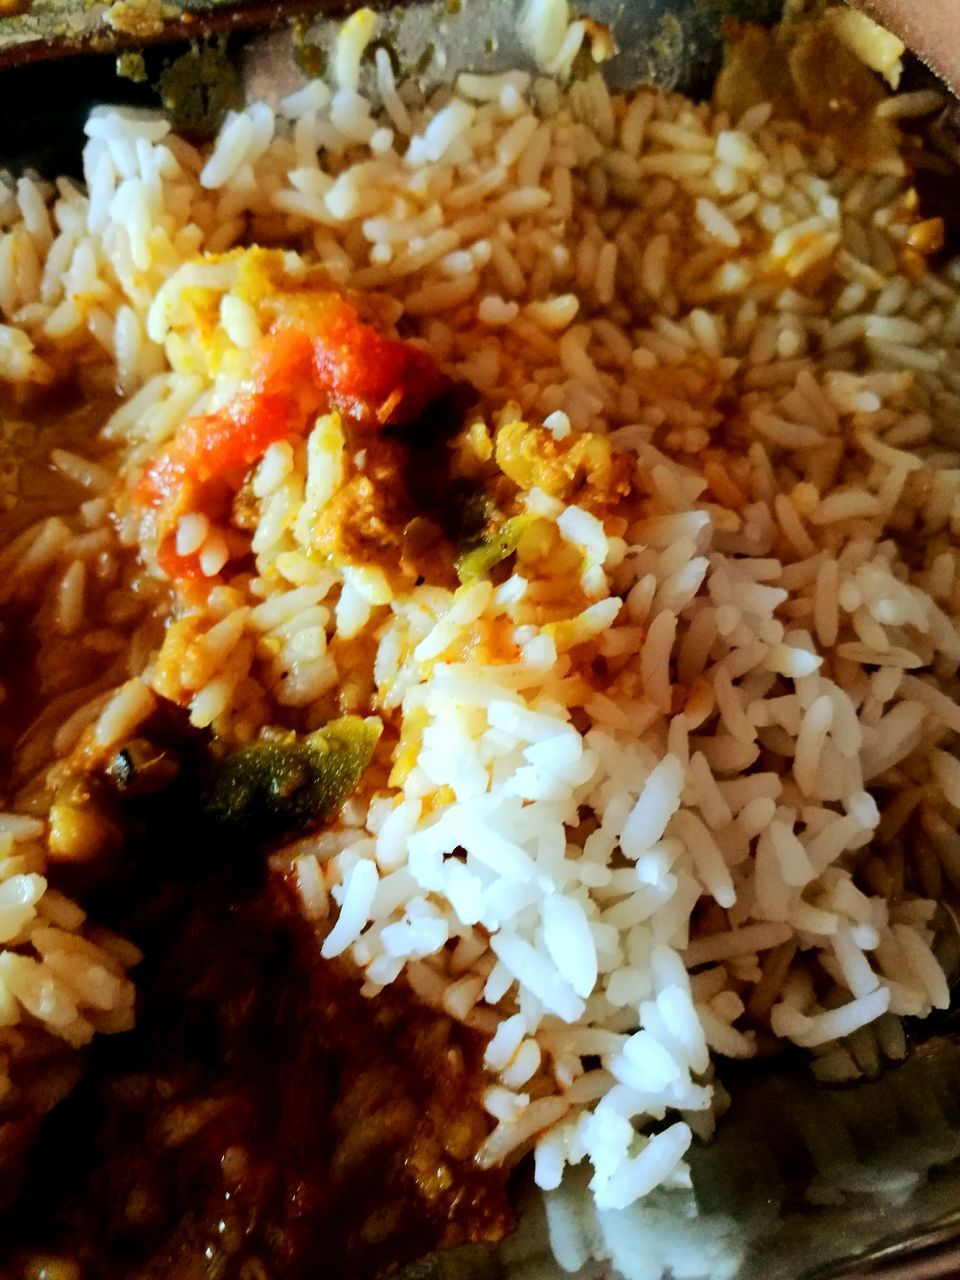 food, food and drink, rice - food staple, ready-to-eat, freshness, no people, close-up, indoors, serving size, fried rice, rice, healthy eating, day